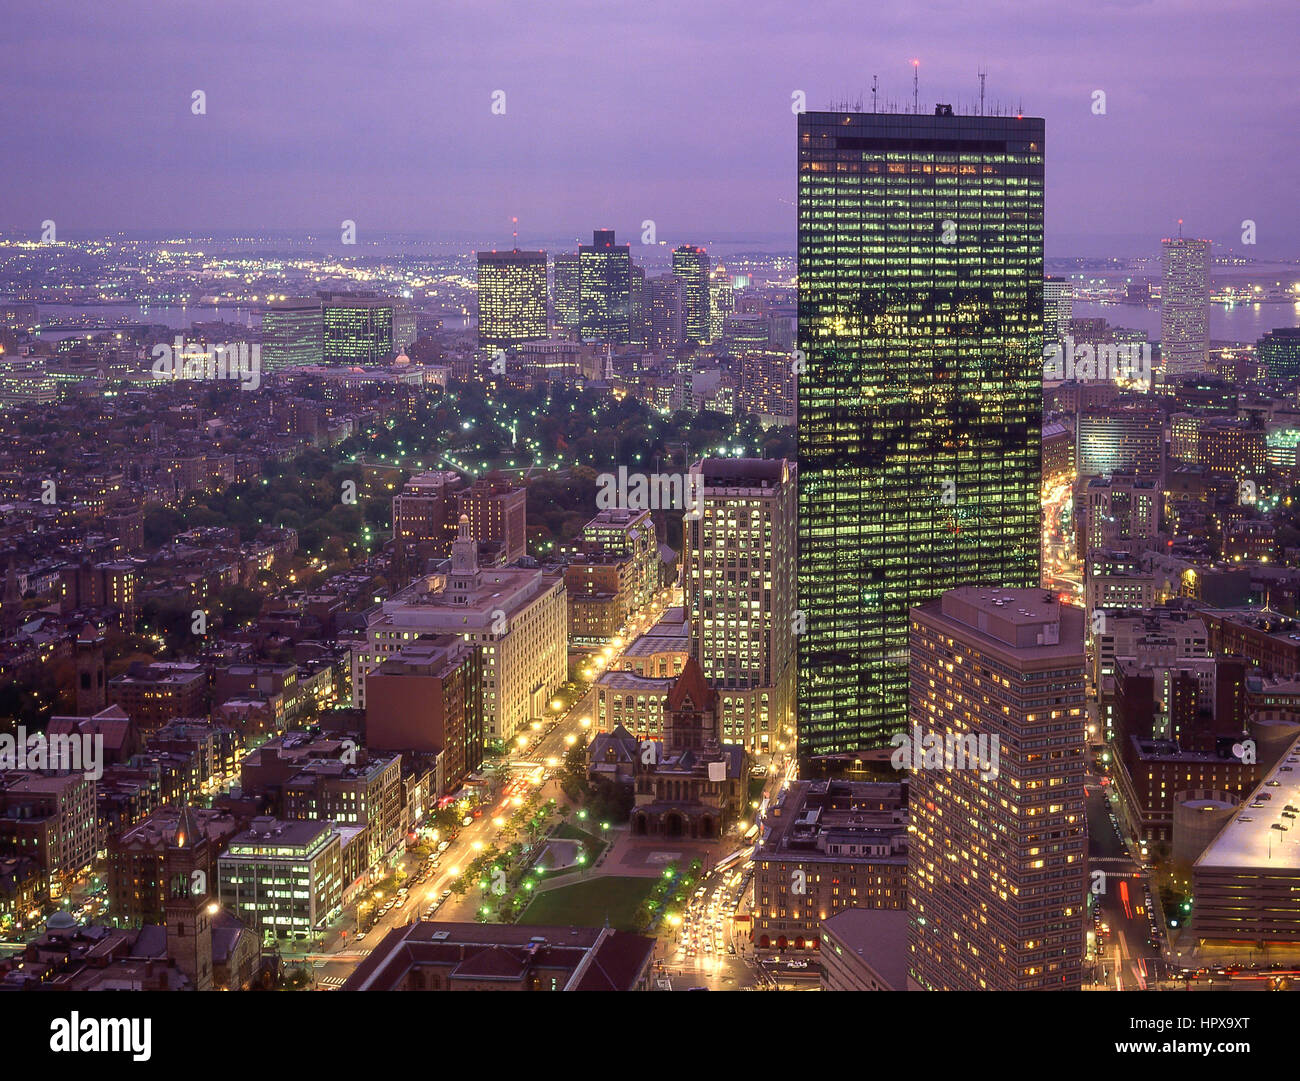 Rooms: Downtown City View At Dusk, Boston, Massachusetts, United